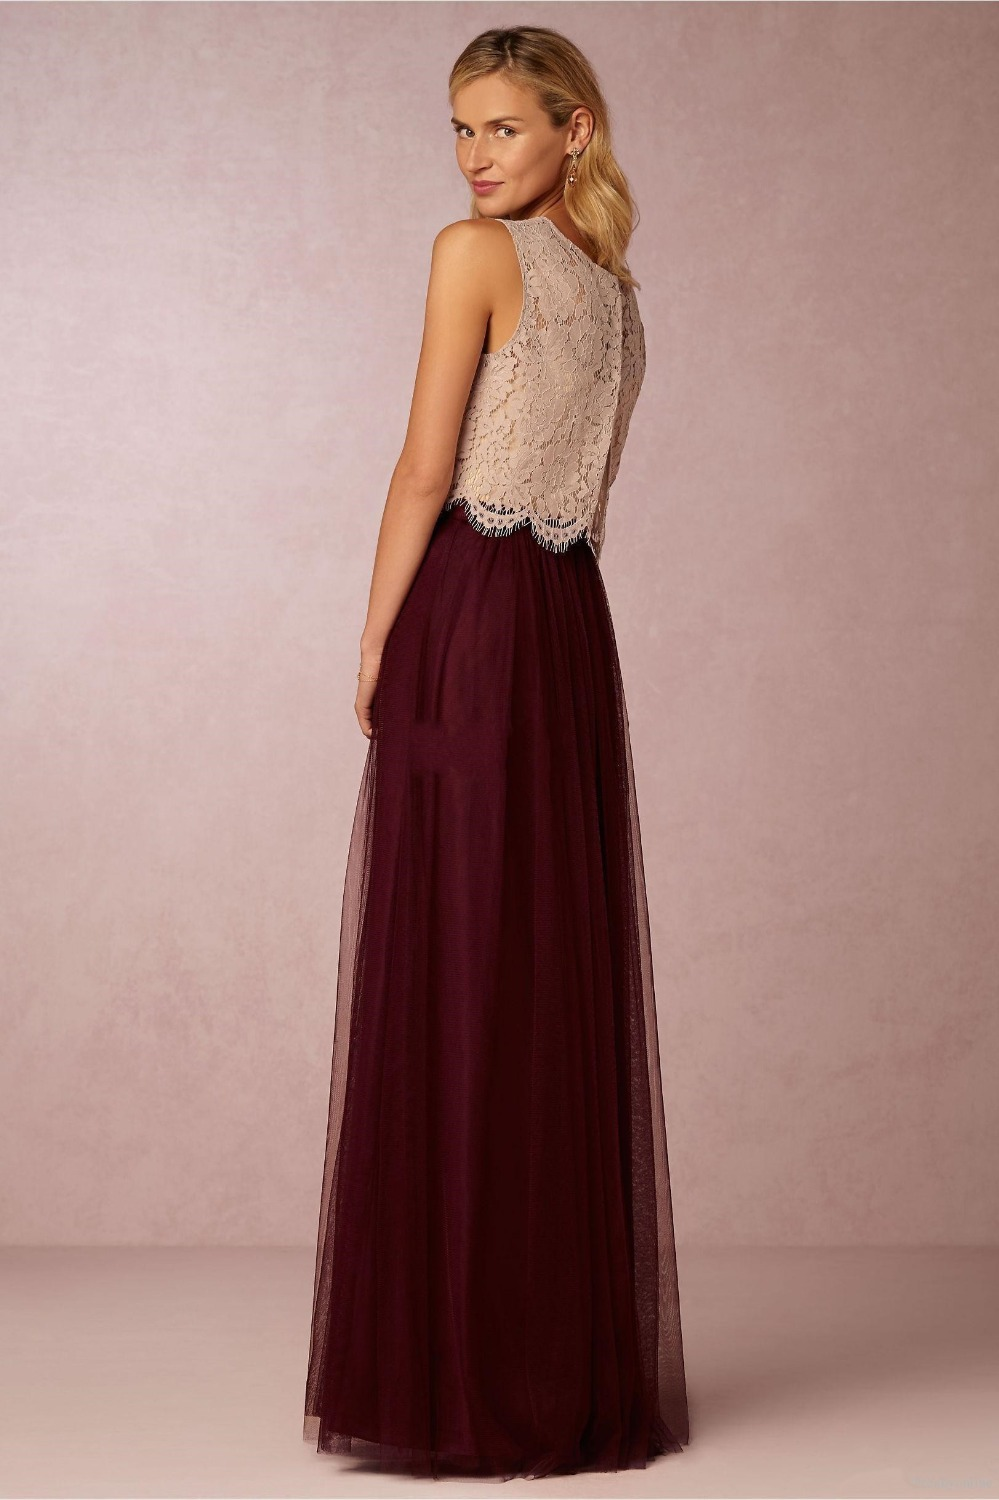 2018 new two pieces lace crop top tulle bridesmaid dresses long 2018 new two pieces lace crop top tulle bridesmaid dresses long burgundy prom gowns vestido de festa longo wedding party gown in bridesmaid dresses from ombrellifo Images